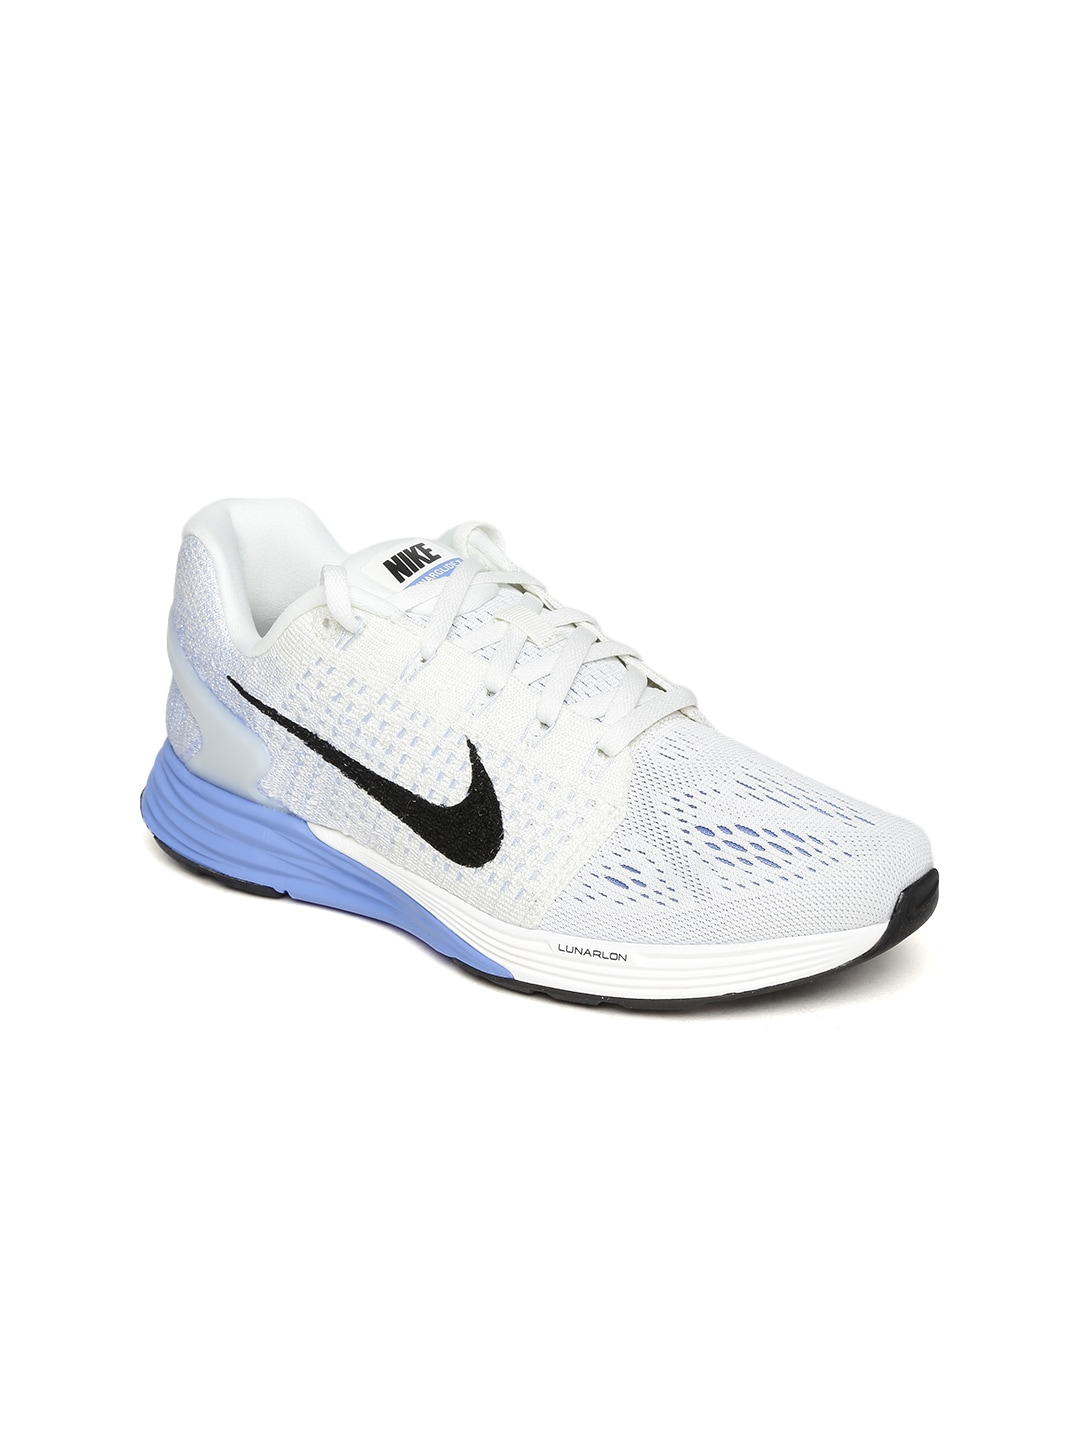 669b6a1e92da Nike 747356-104 Women Off White Lunarglide 7 Running Shoes- Price in India